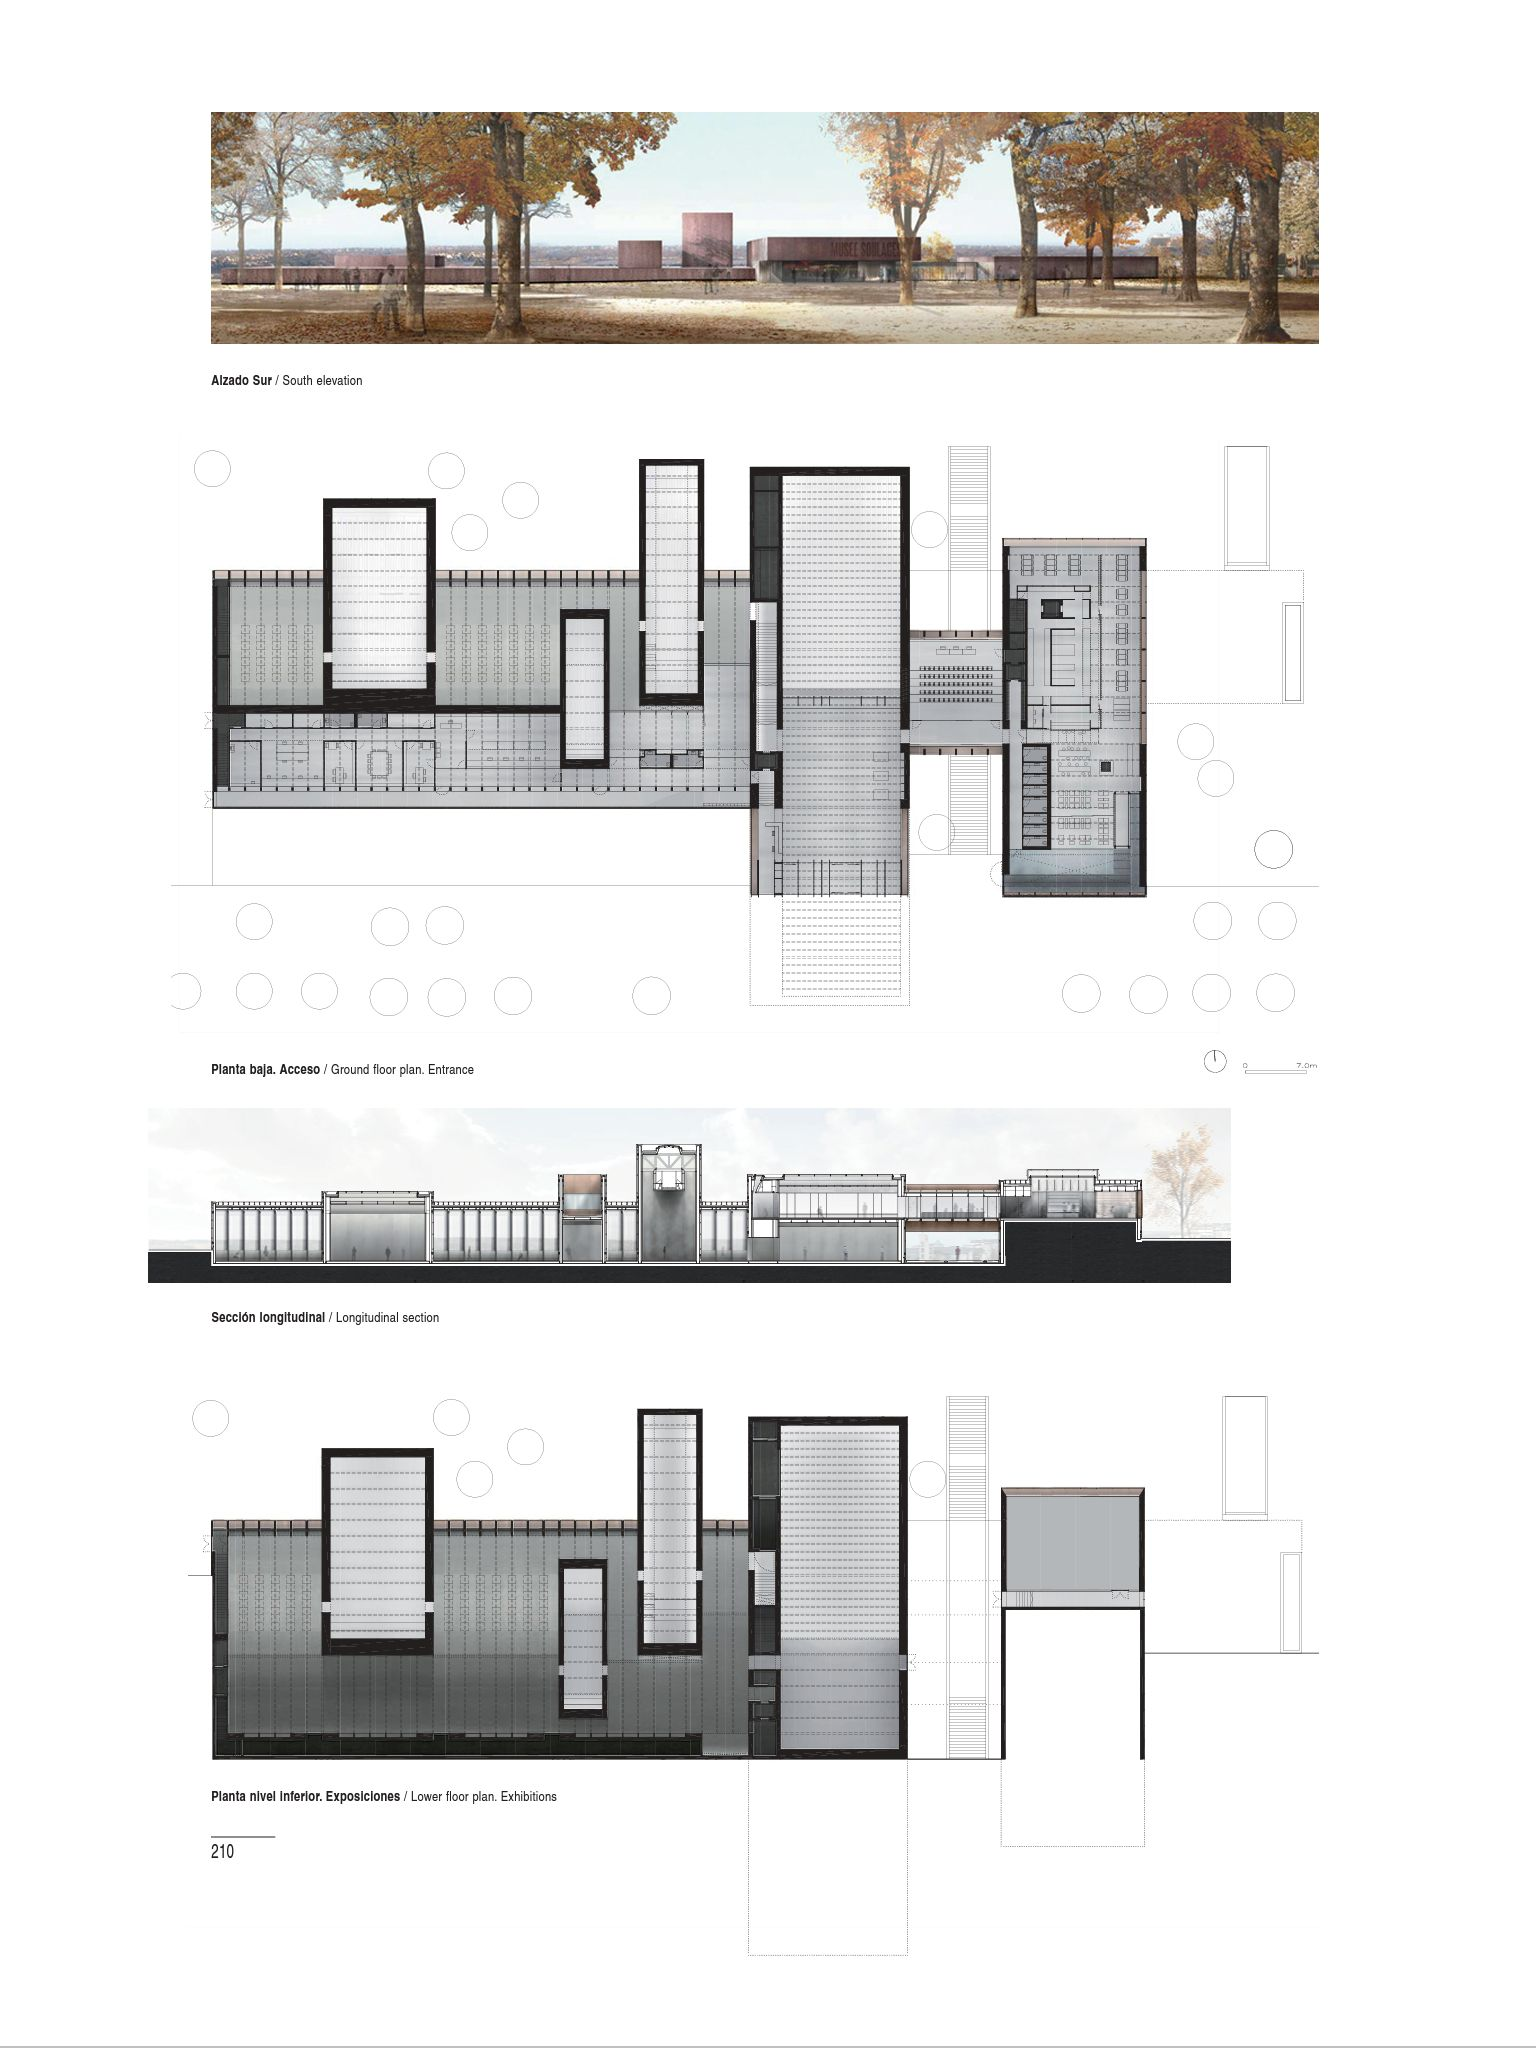 Rcr arquitectes museo soulages rodez francia 2008 for Winery floor plans by architects